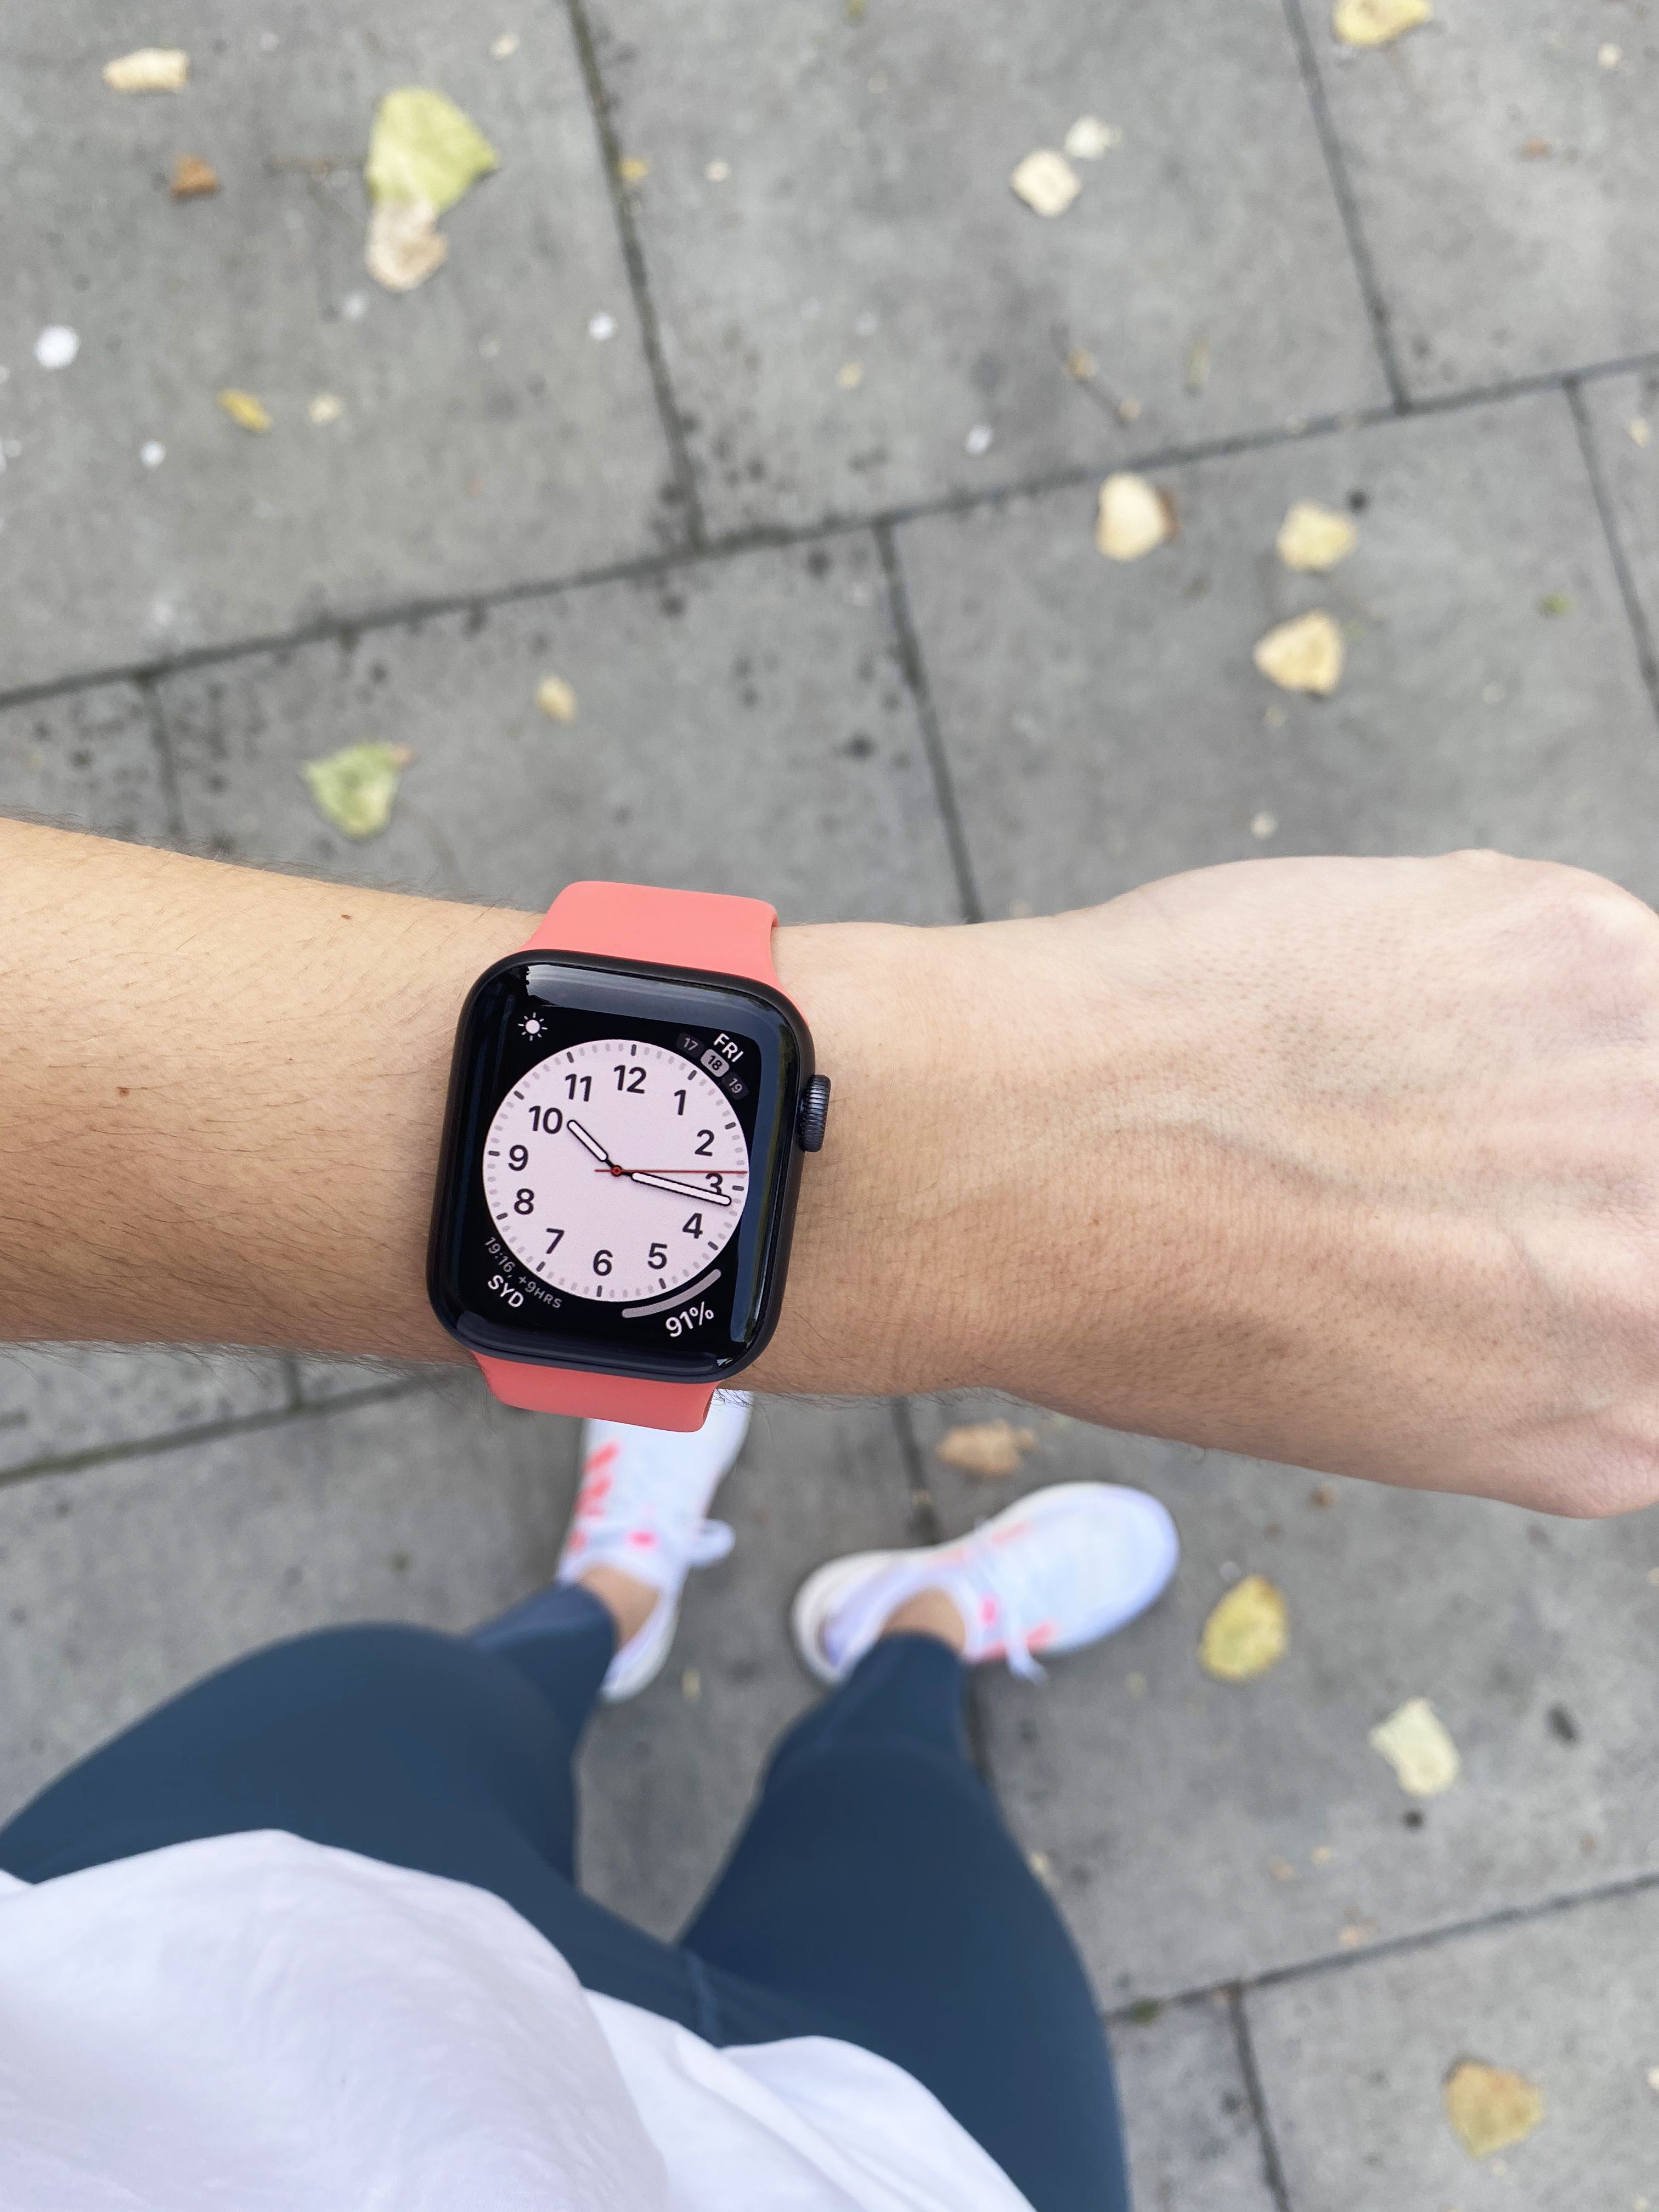 Excited for Apple Watch 6? Sell your old model for fast